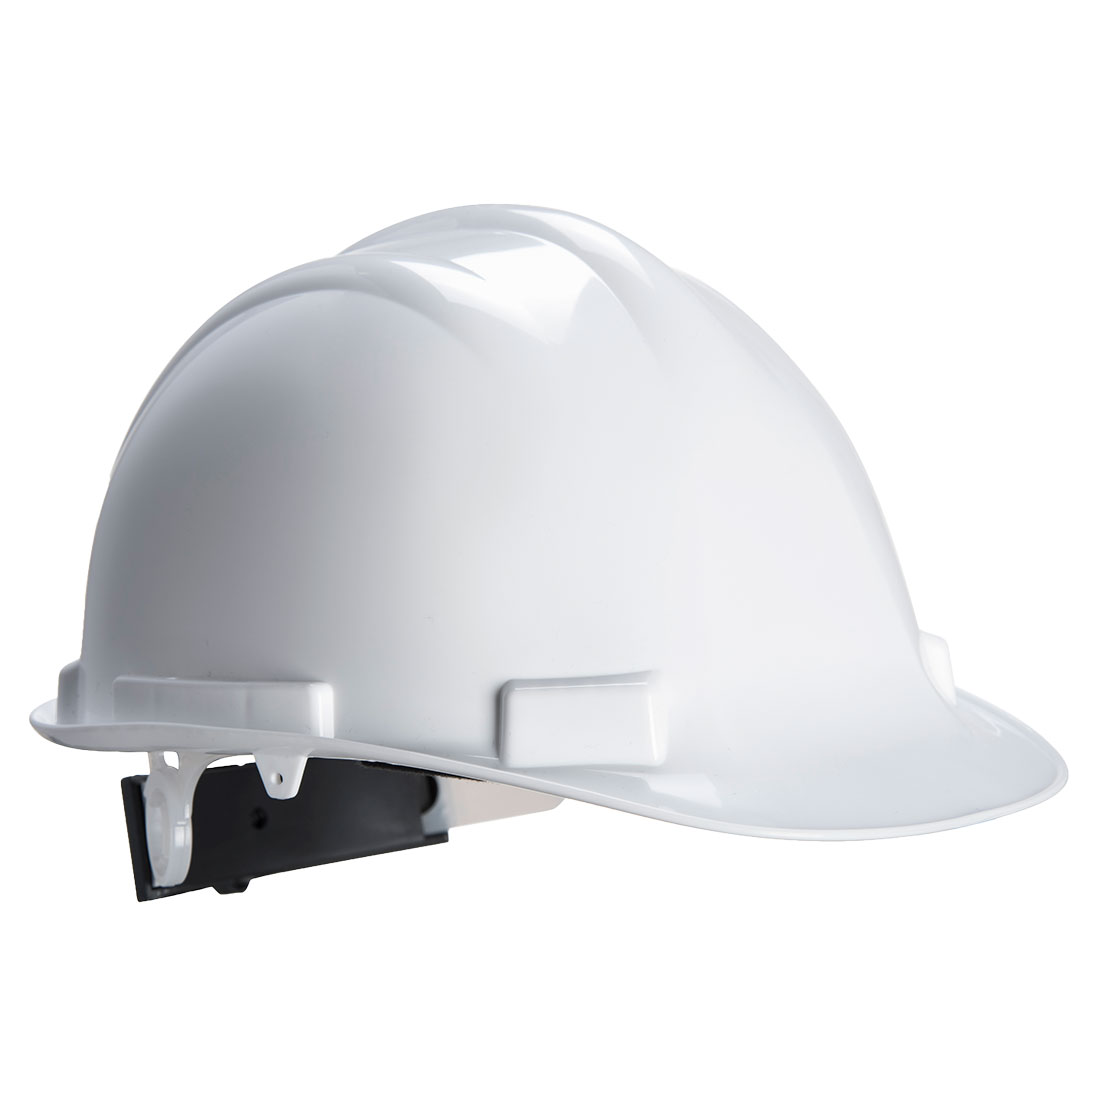 Expertbase Safety Helmet  PW50WHR